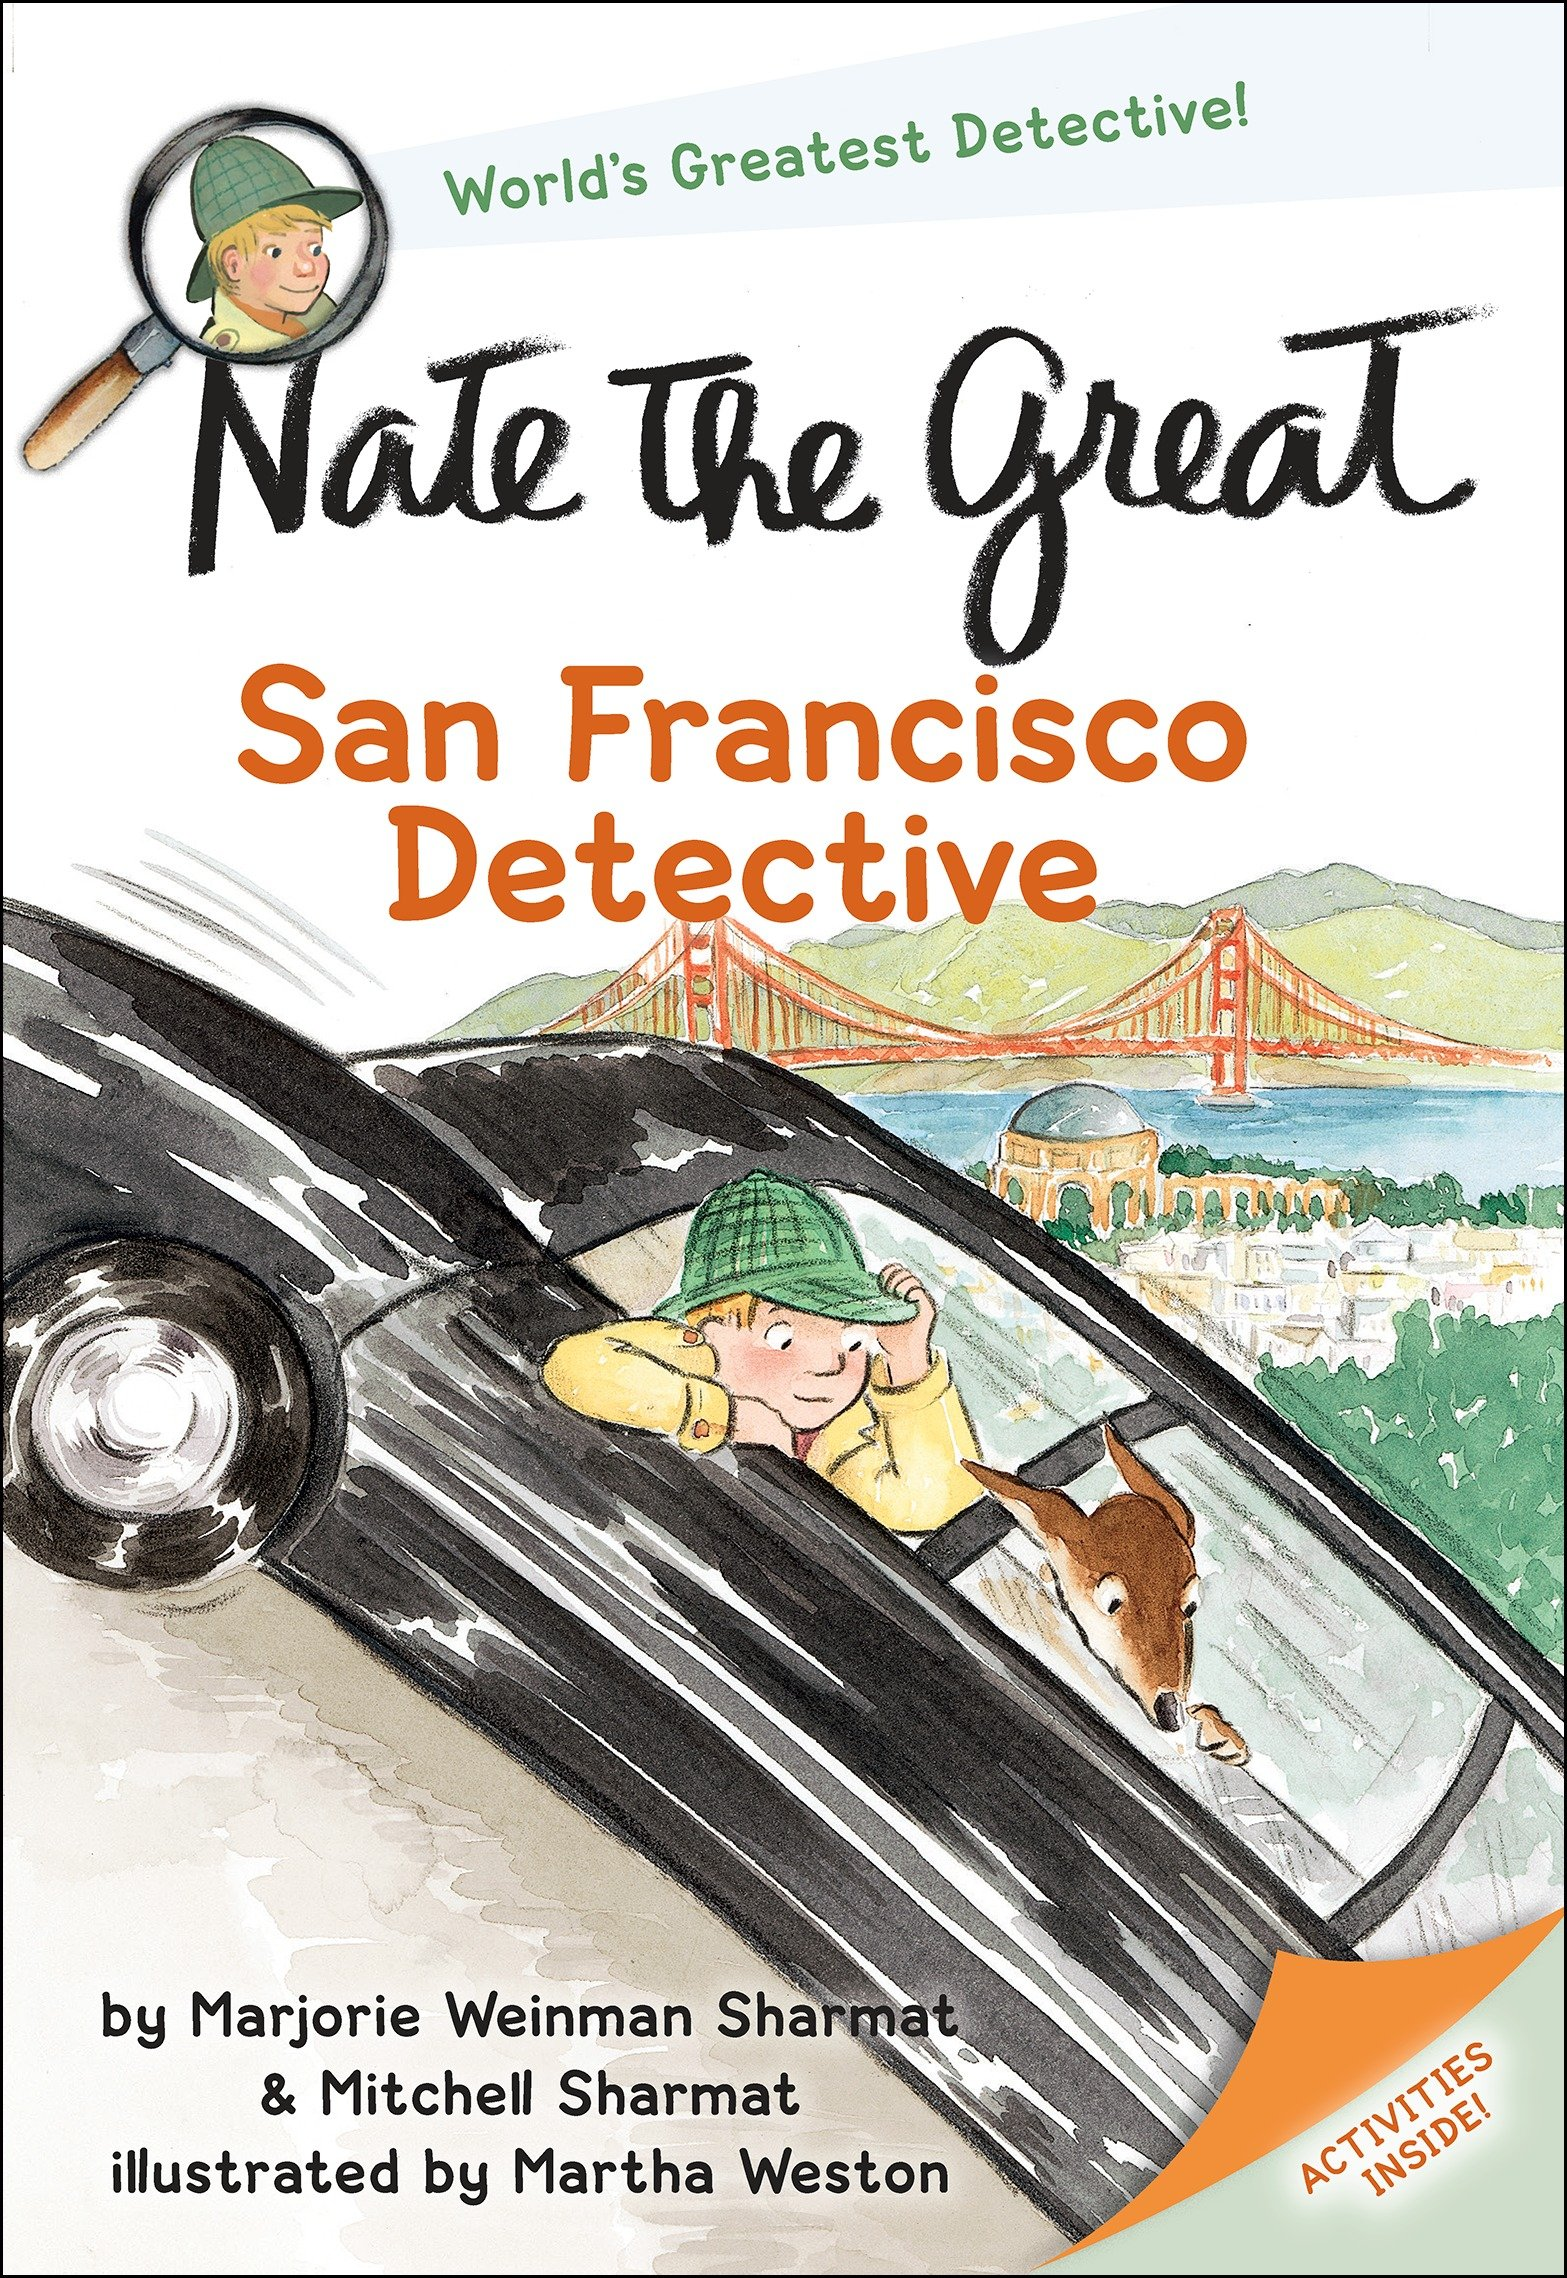 Nate the Great, San Francisco detective cover image